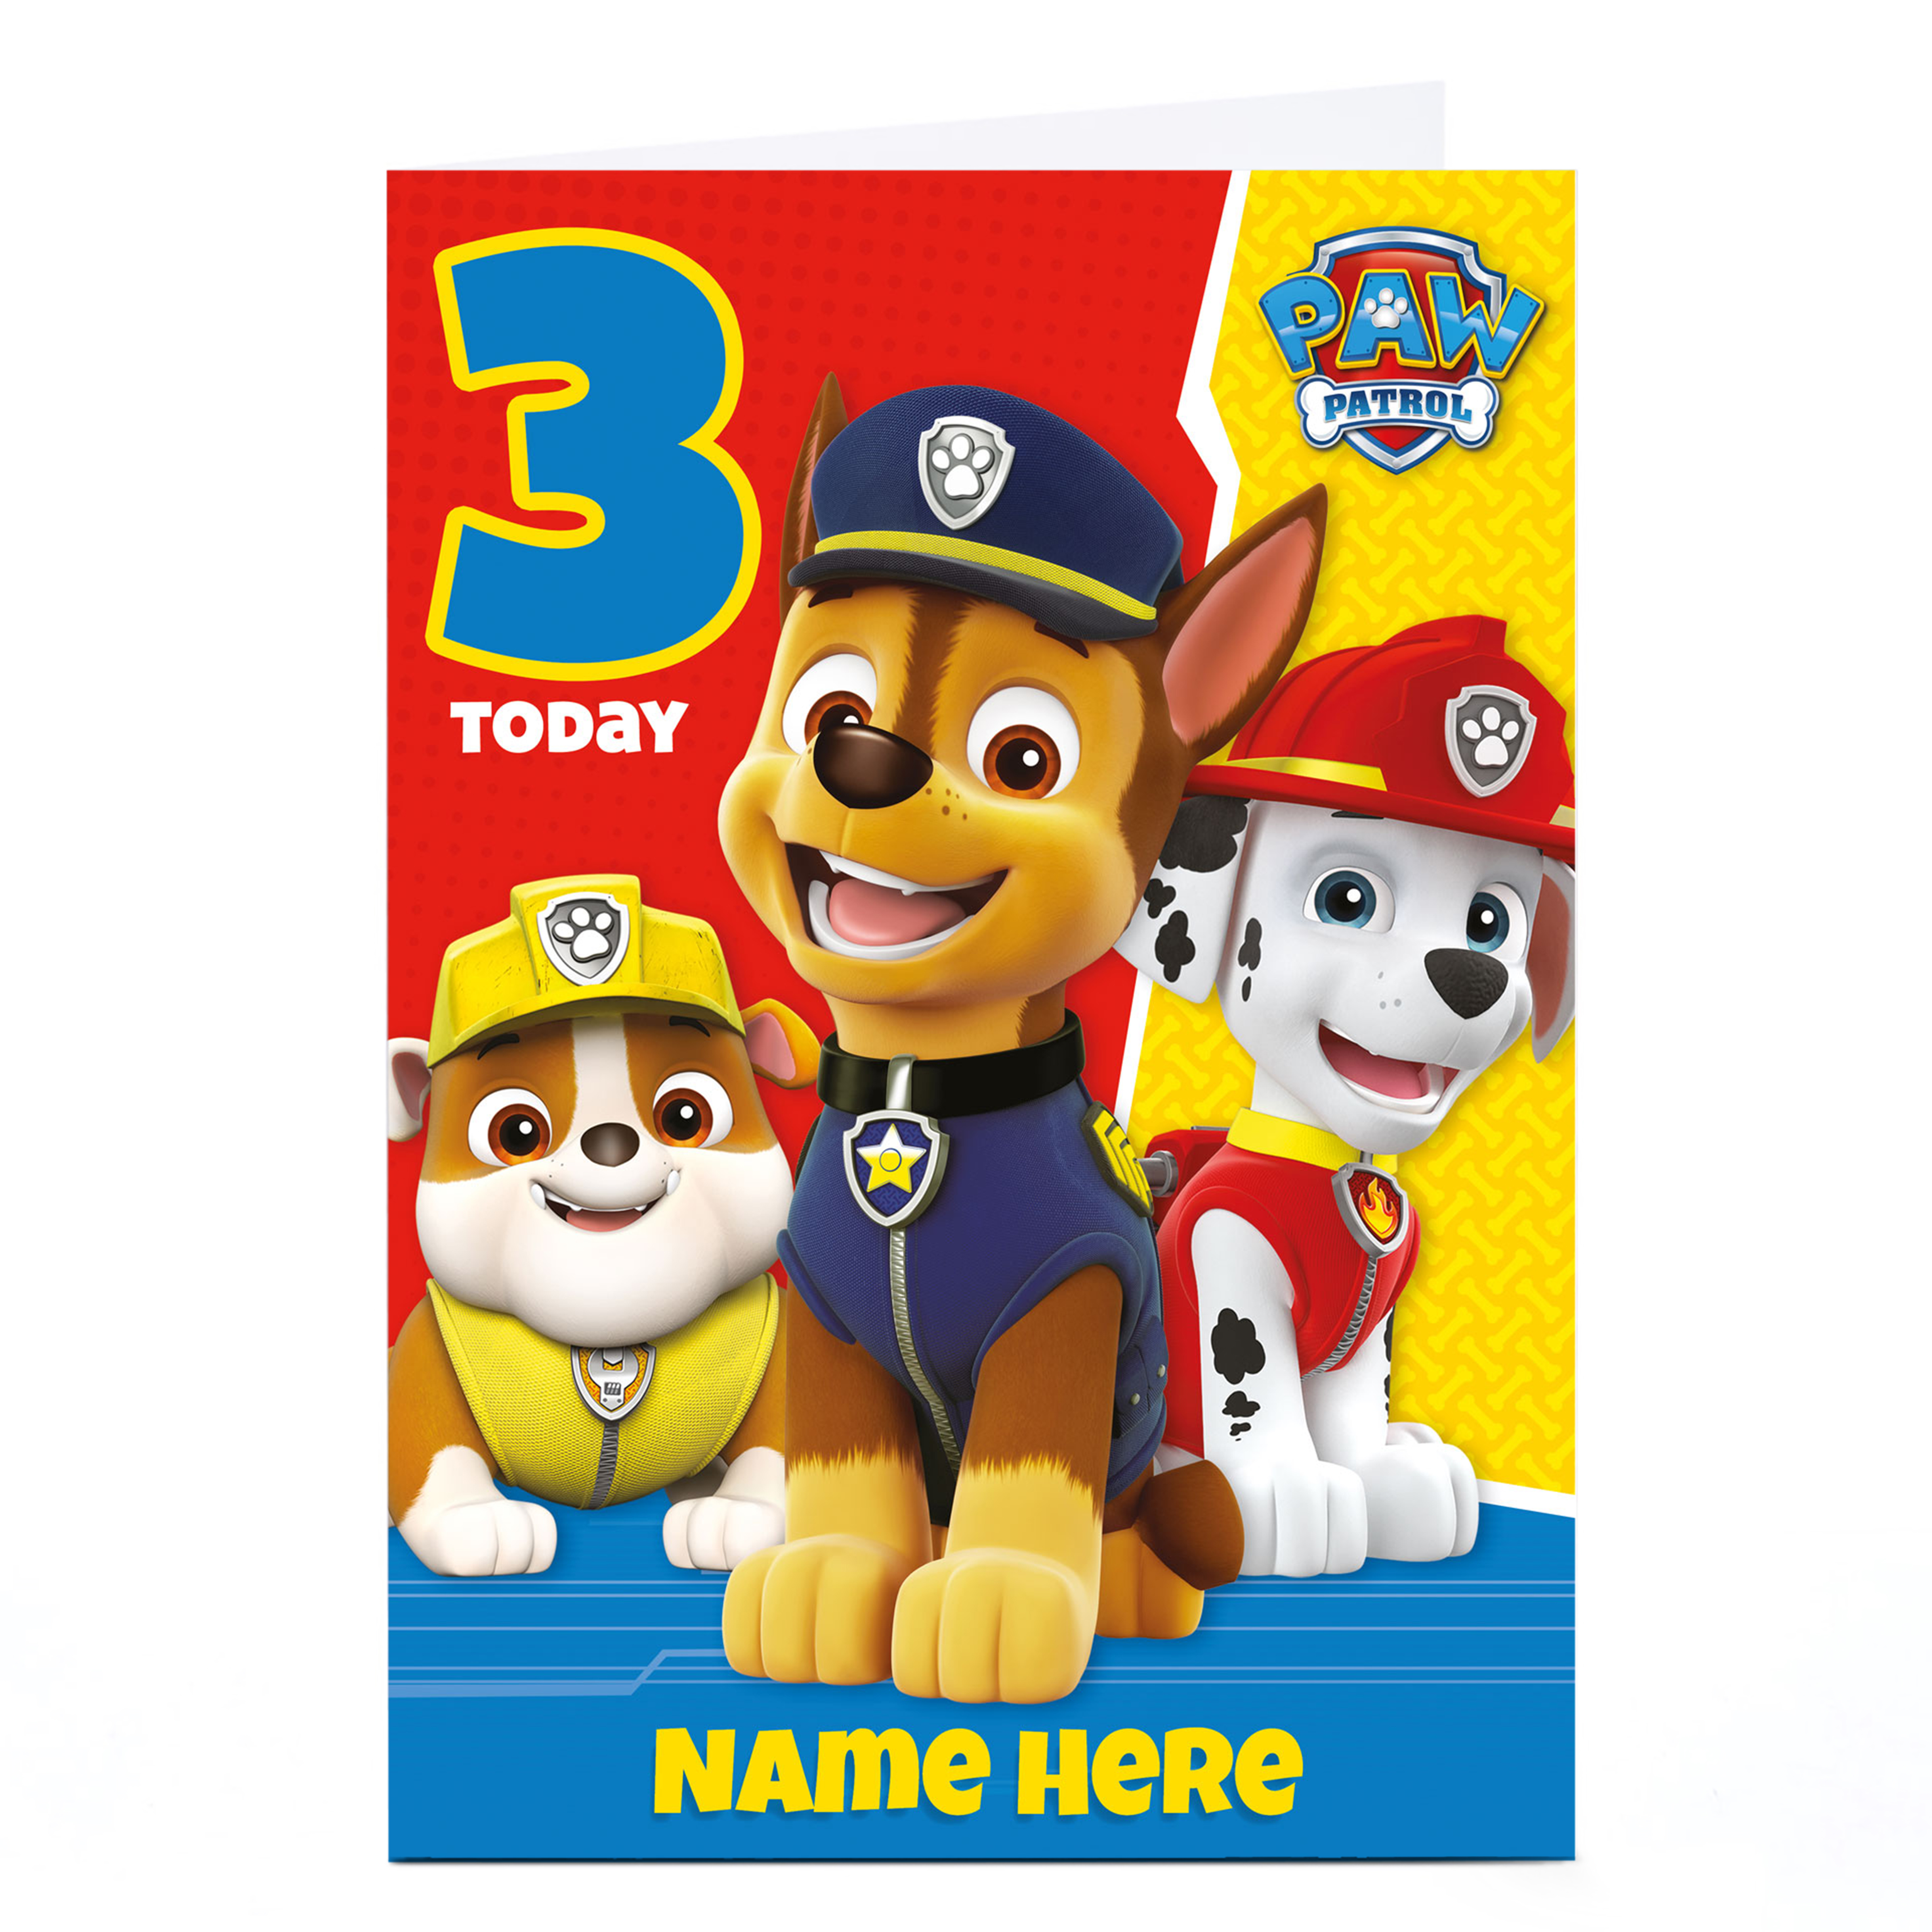 Personalised Paw Patrol Card - 3 Today